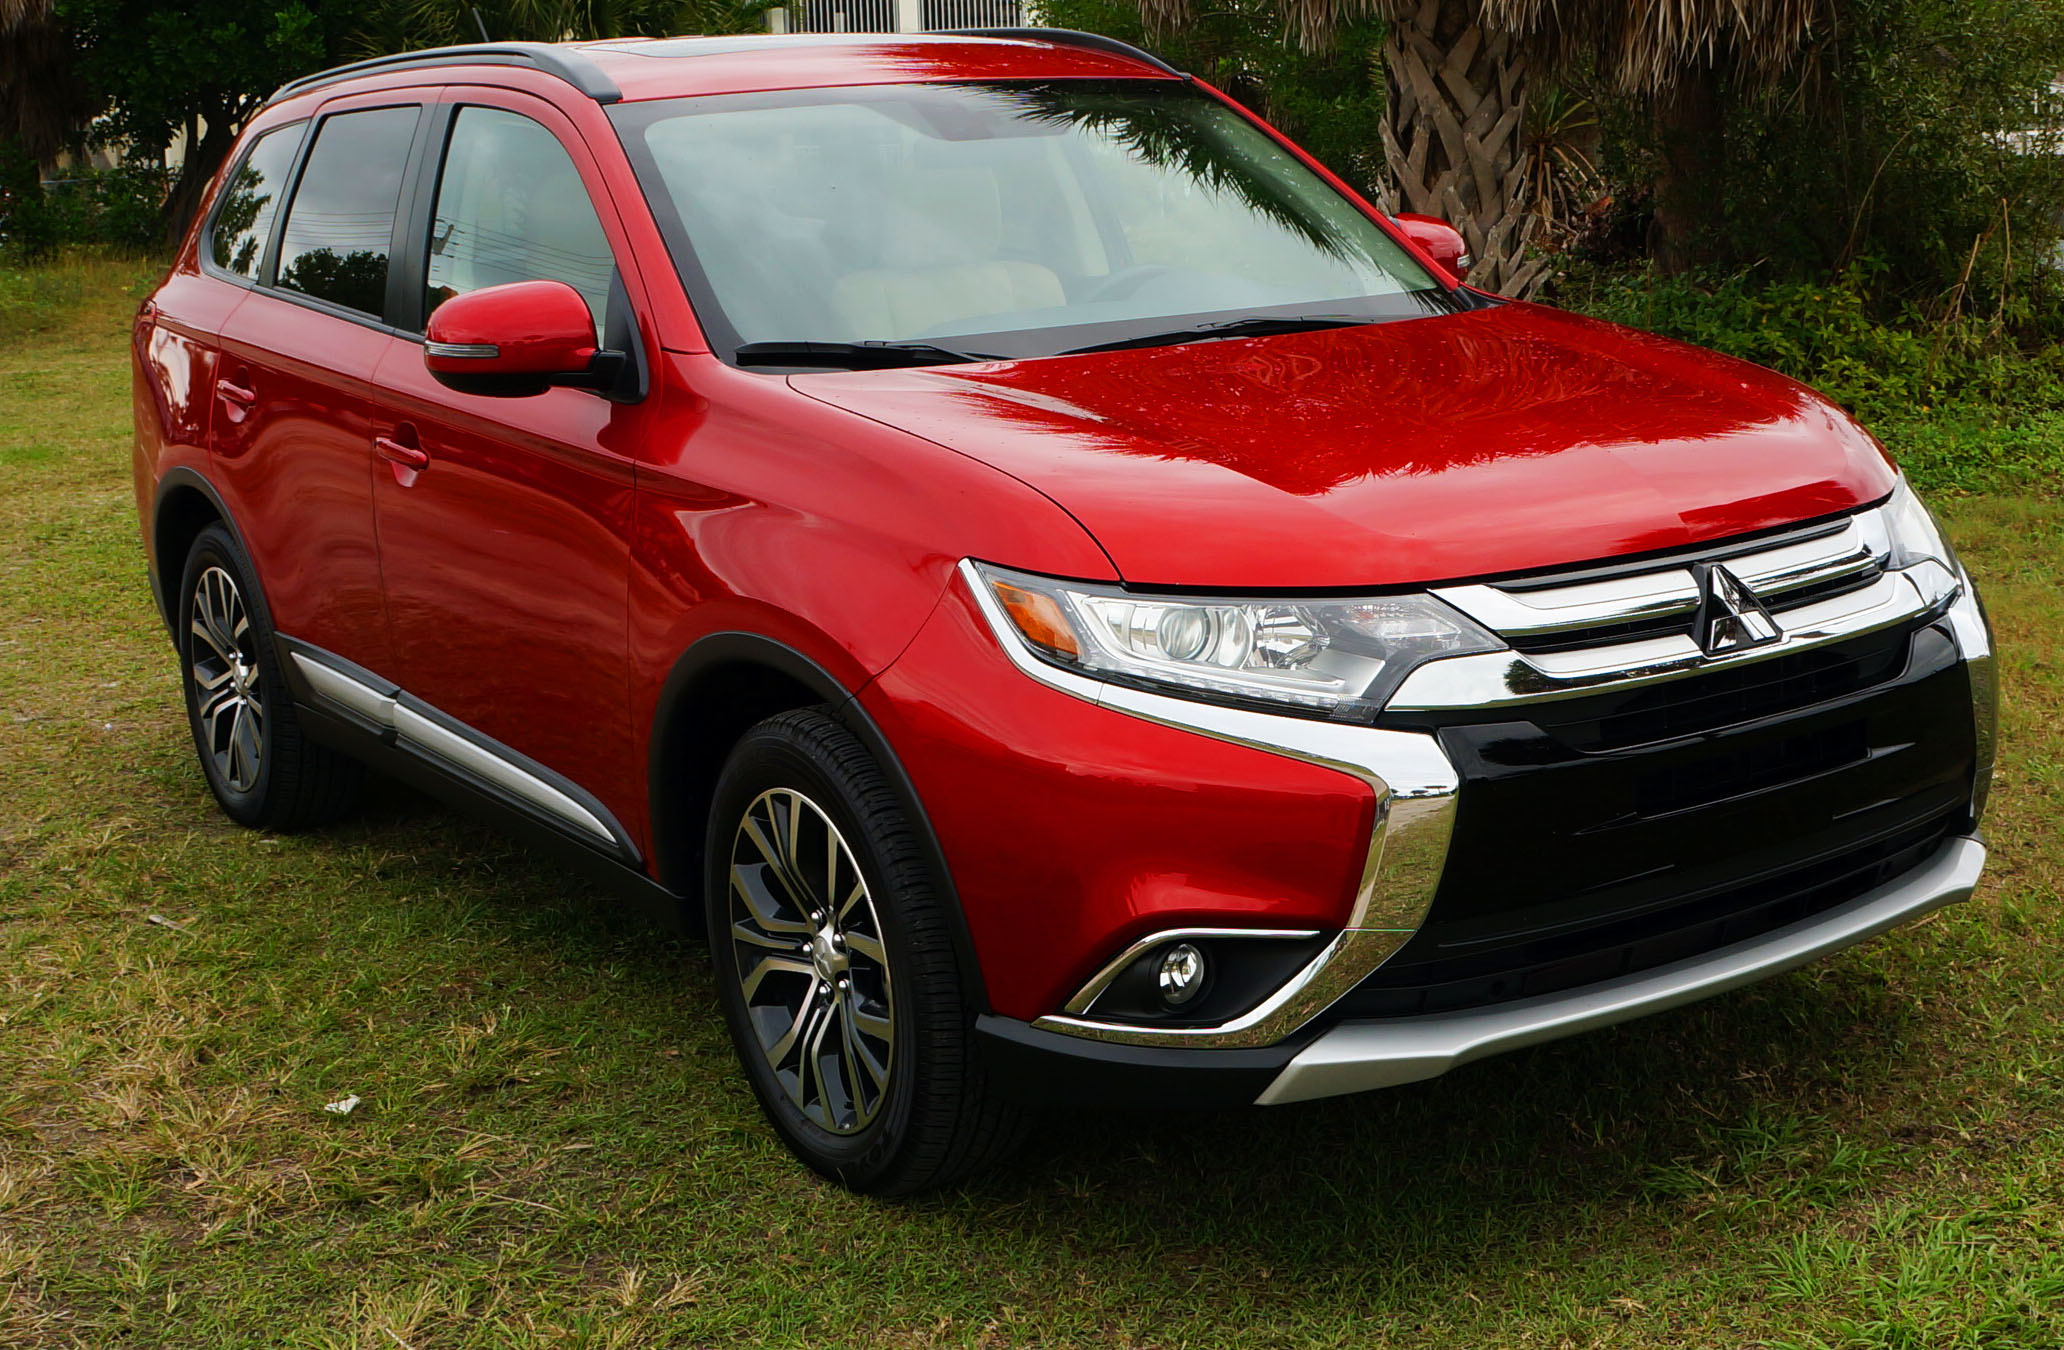 Review: 2016 Mitsubishi Outlander SEL